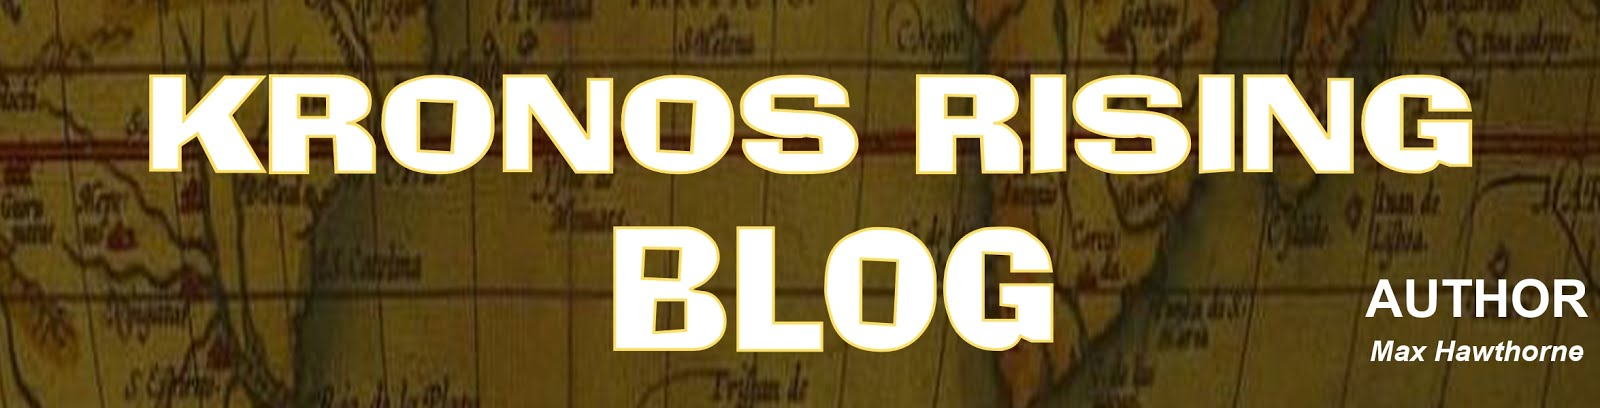 Follow Kronos Rising Blog